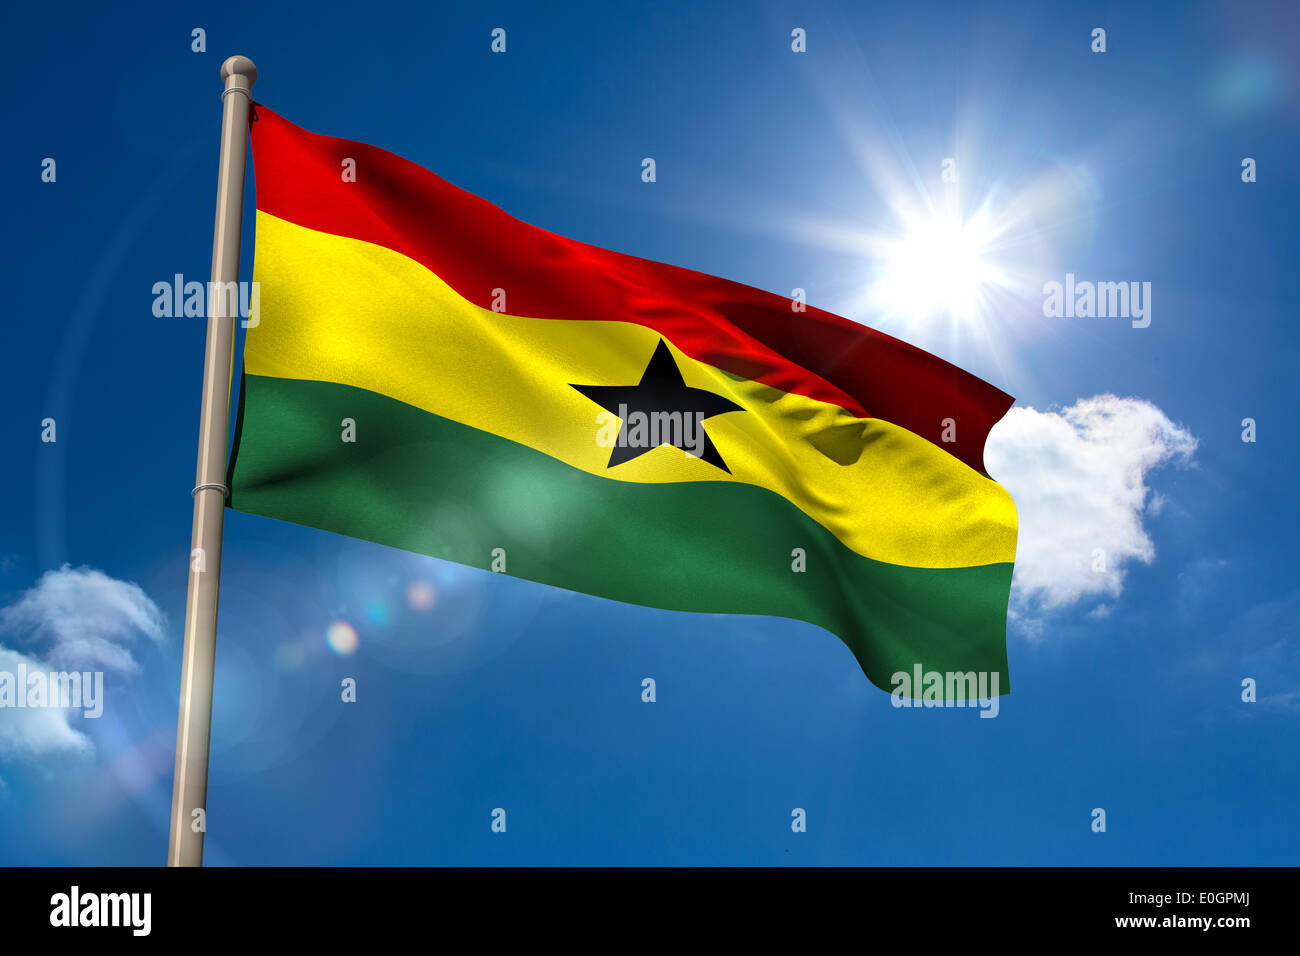 Ghana national flag on flagpole - Stock Image